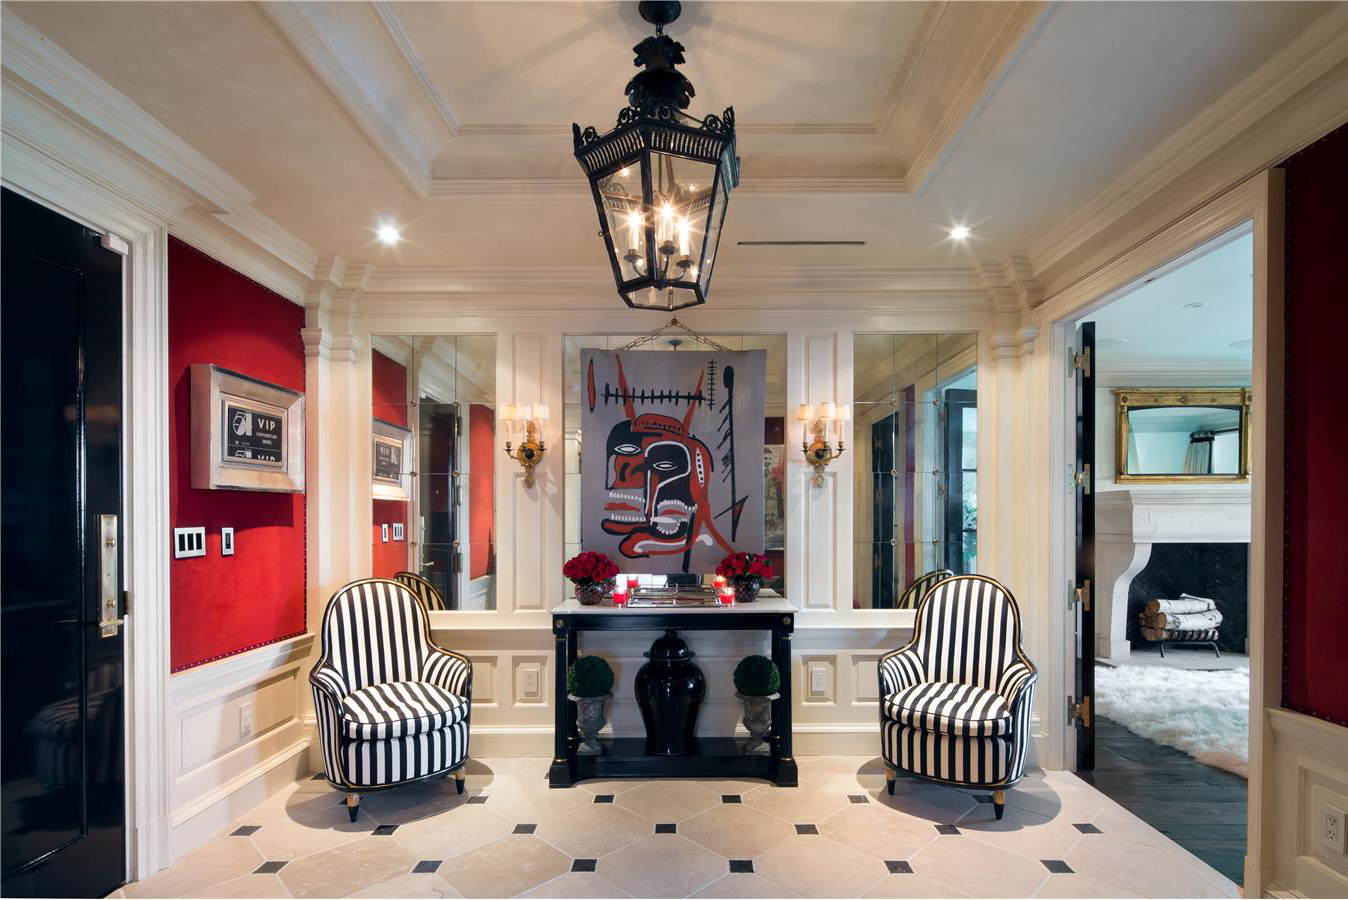 Black-and-white striped chairs greet guests in the entry hall.